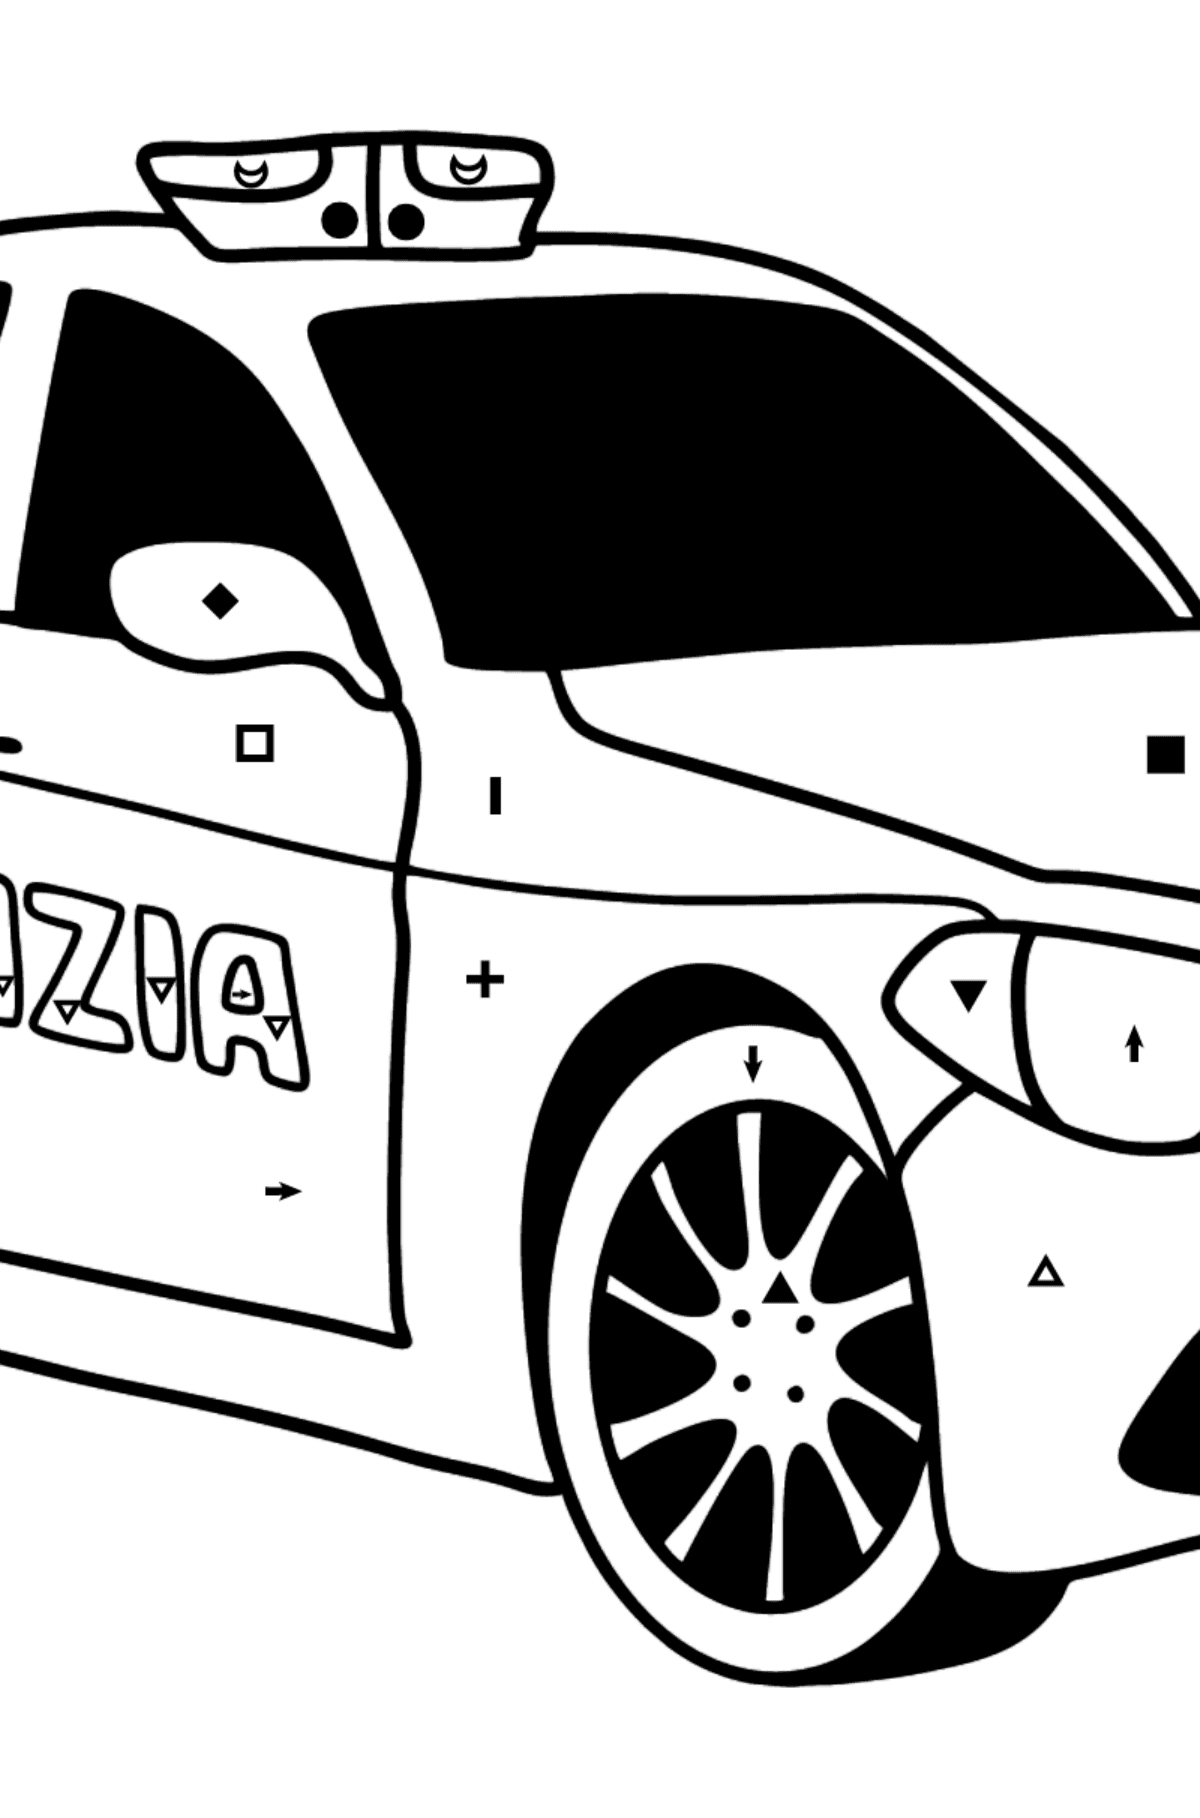 Police Car in Italy coloring page - Coloring by Symbols for Kids